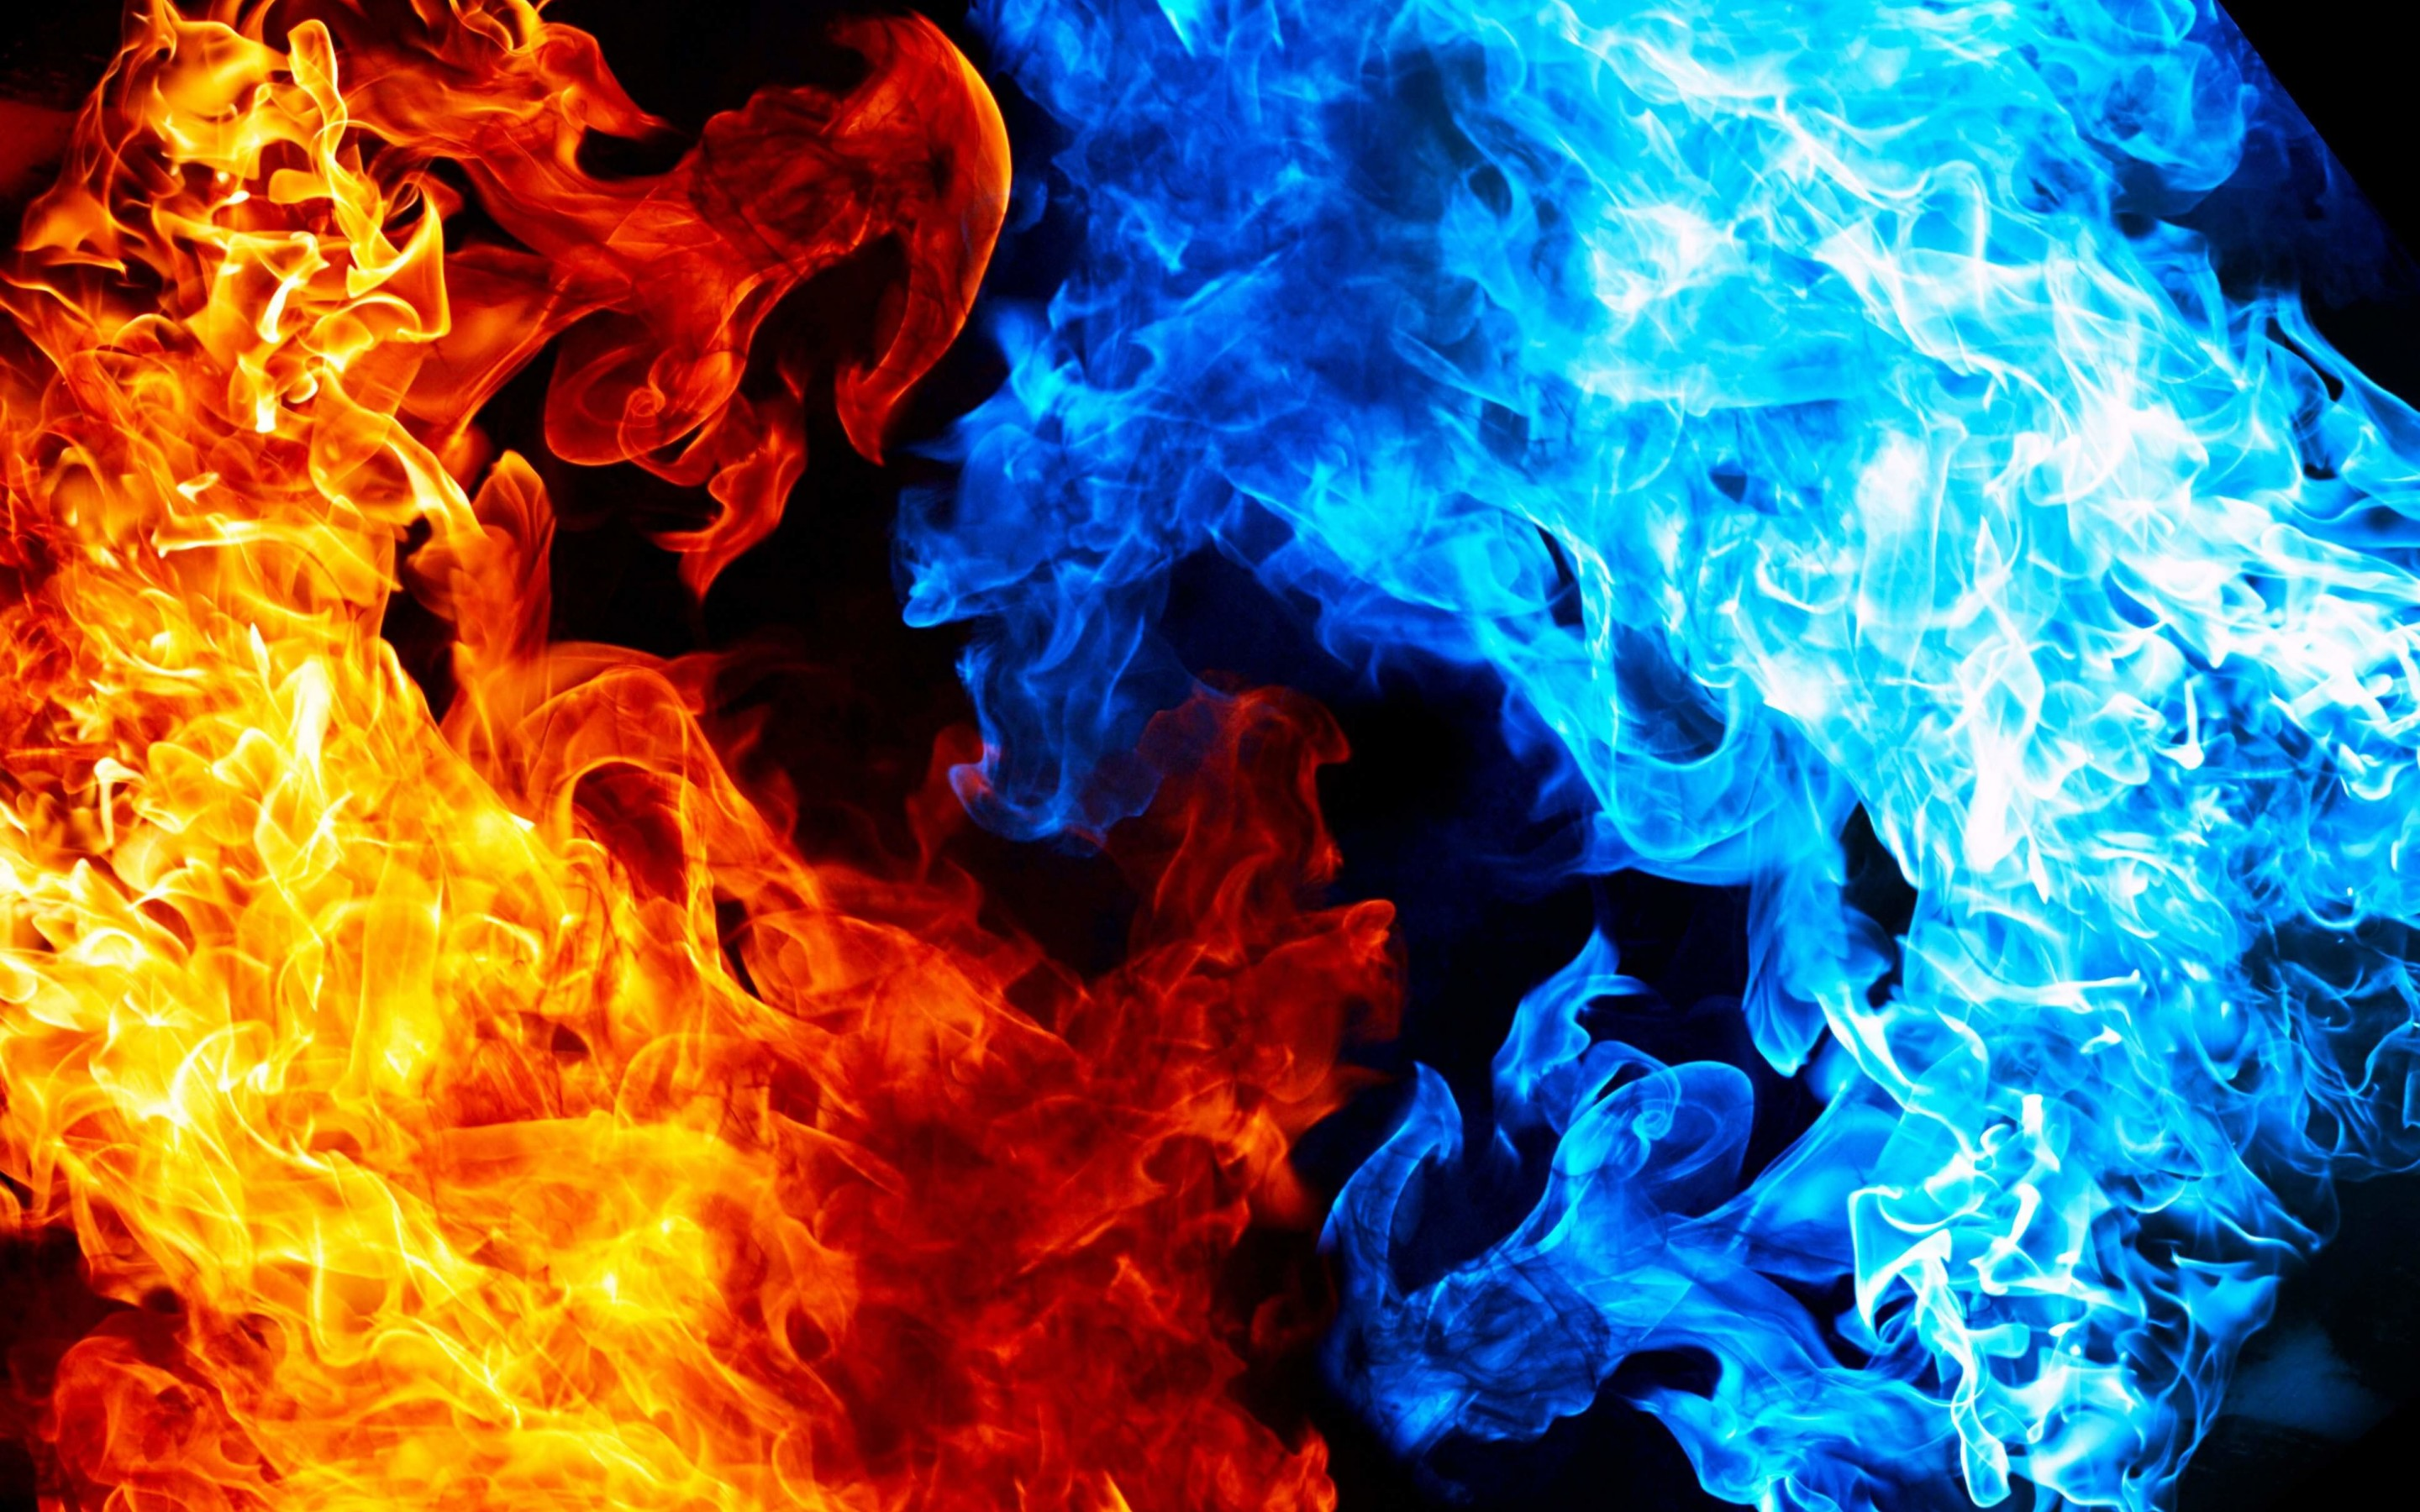 Blue And Red Fire Wallpaper for Desktop 2880x1800